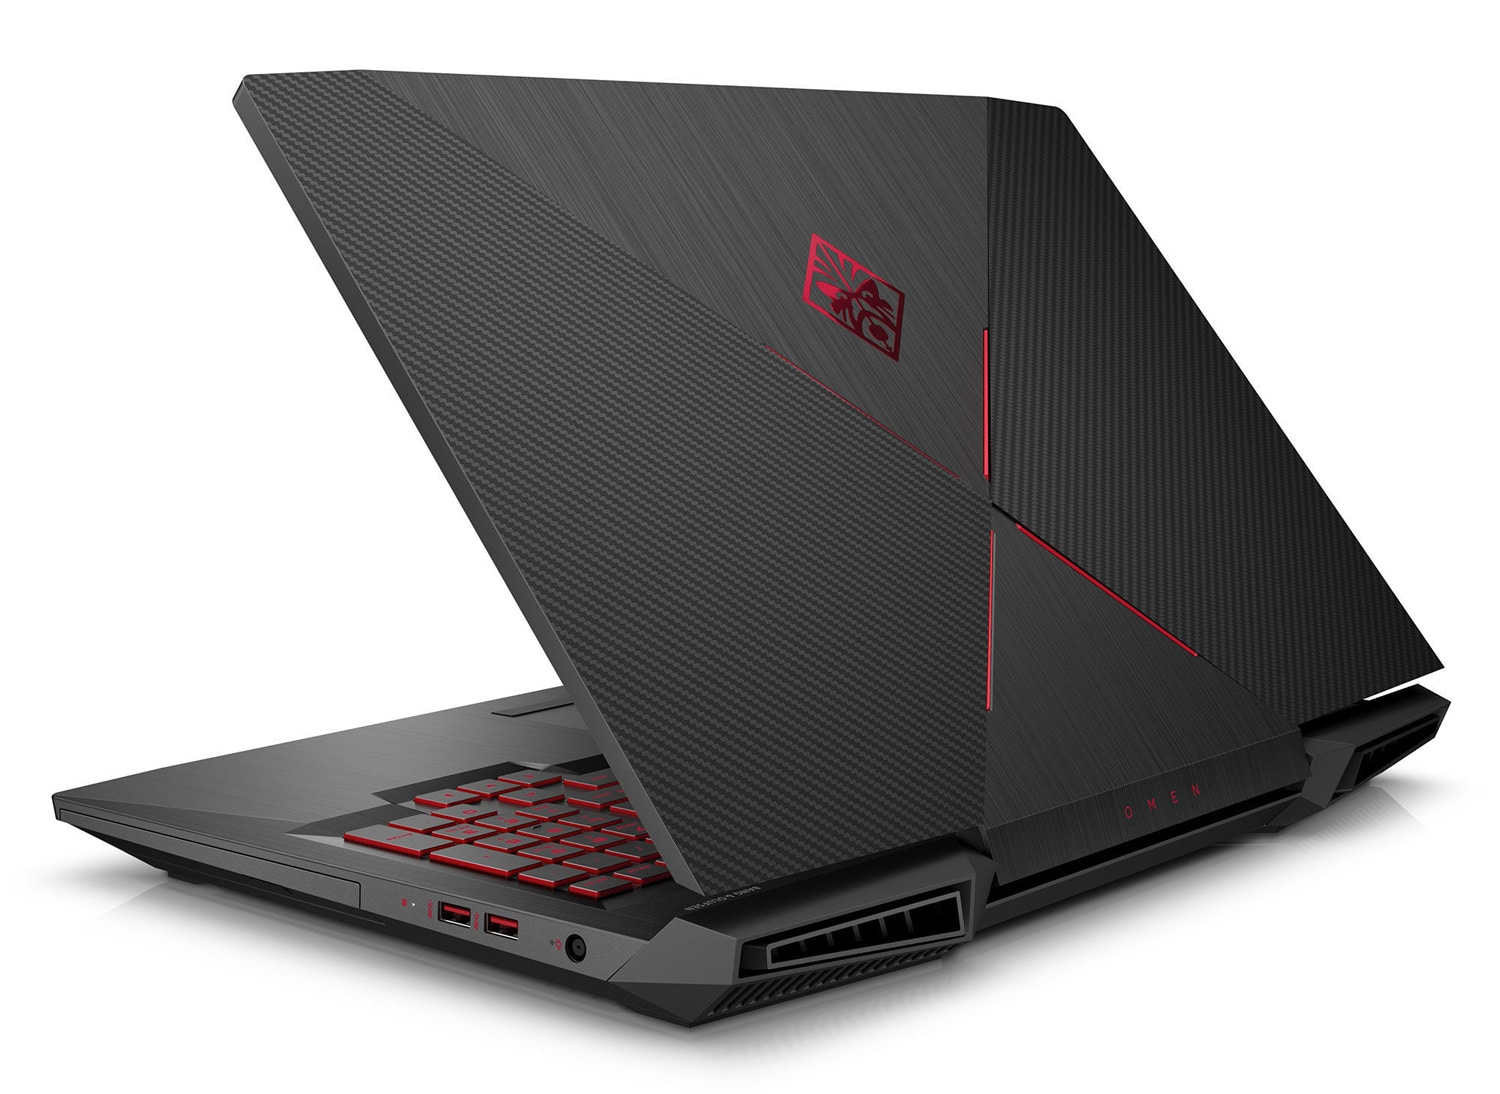 "HP Omen 17-an044nf, PC portable 17"" IPS 120Hz GTX 1070 SSD i7 (1399€)"